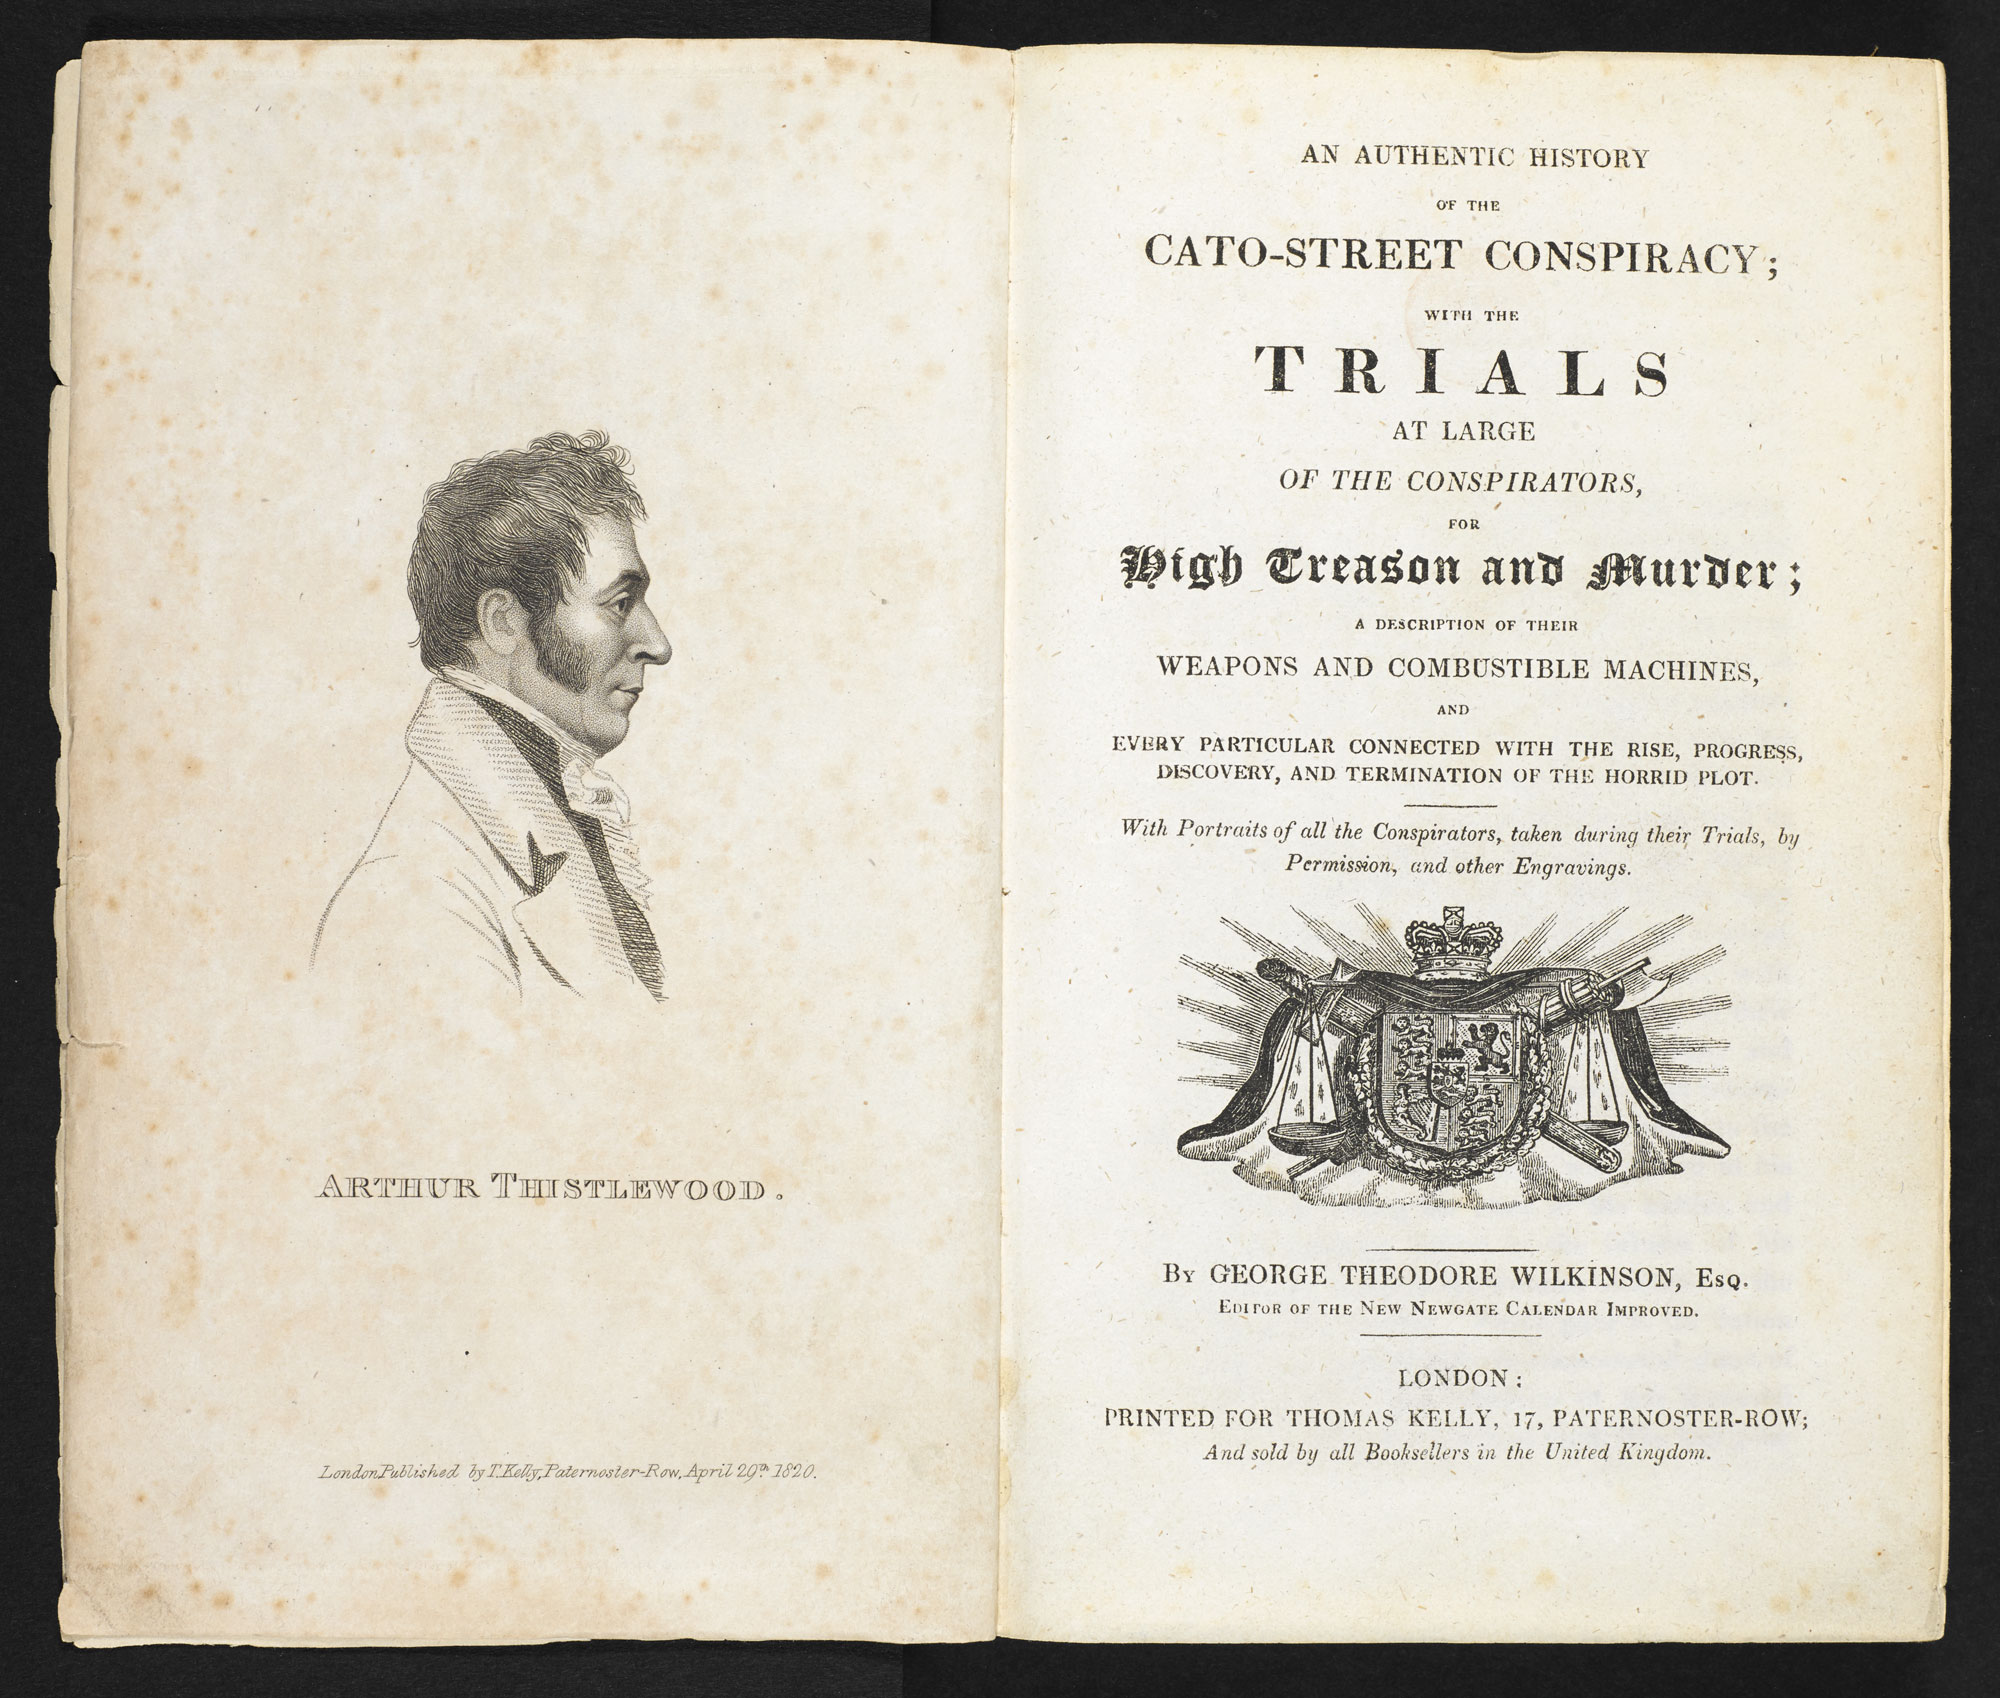 An Authentic History of the Cato-Street Conspiracy [page: frontispiece and title page]